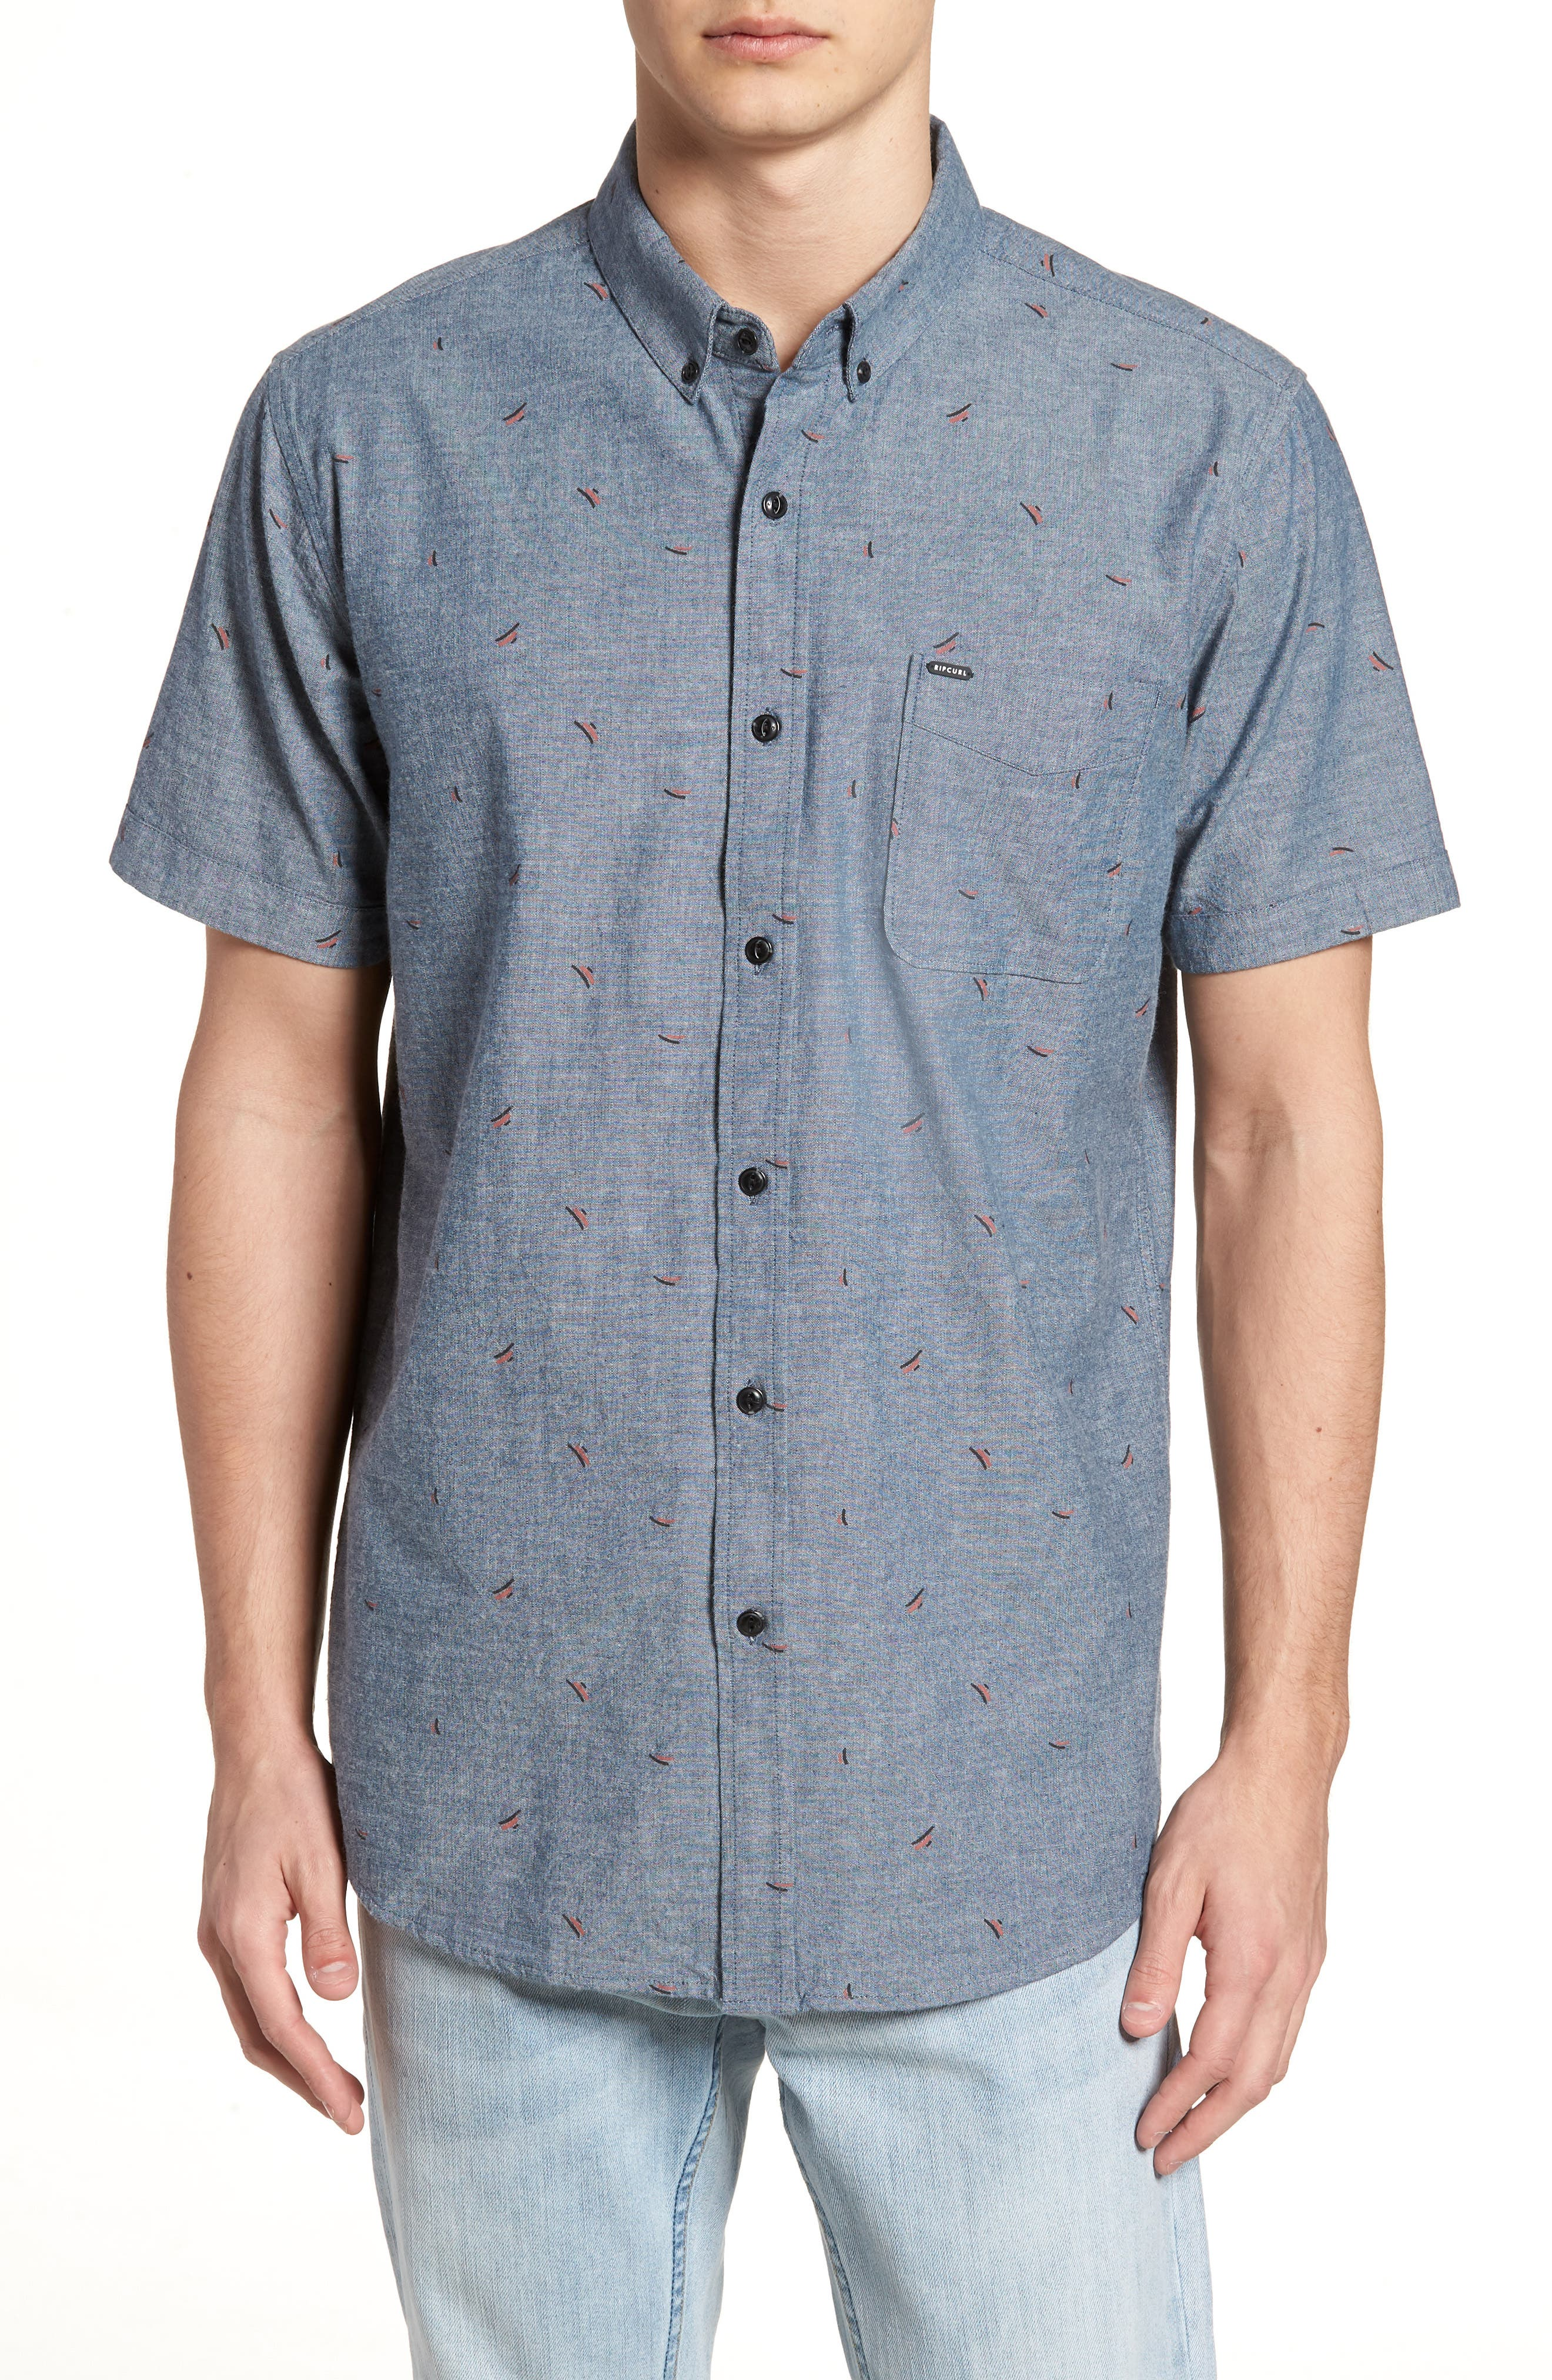 Northern Short Sleeve Shirt,                         Main,                         color, Blue